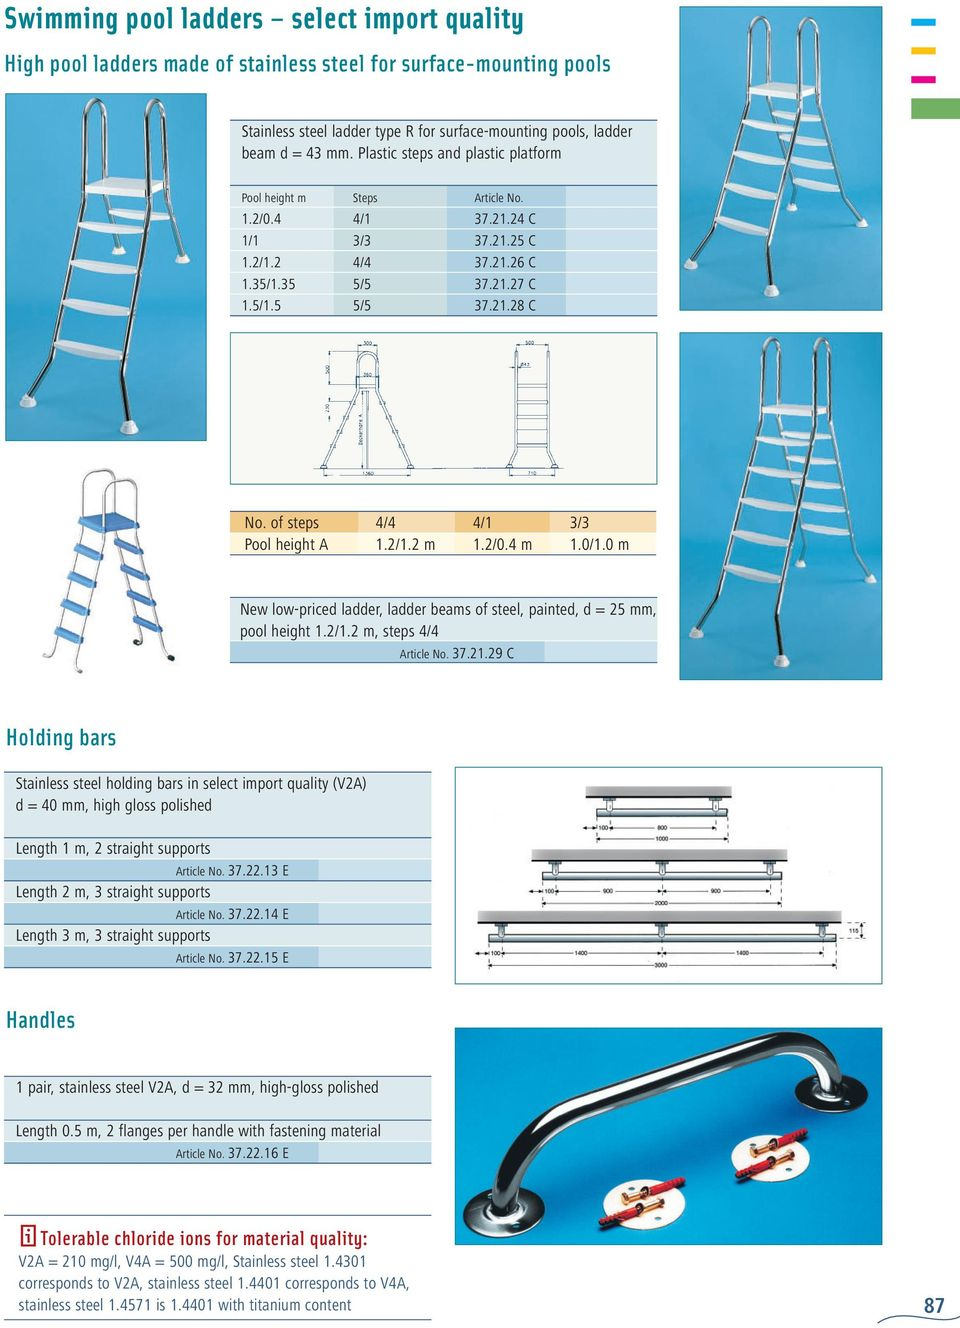 of steps 4/4 4/1 3/3 Pool height A 1.2/1.2 m 1.2/0.4 m 1.0/1.0 m New low-priced ladder, ladder beams of steel, painted, d = 25 mm, pool height 1.2/1.2 m, steps 4/4 Article No. 37.21.